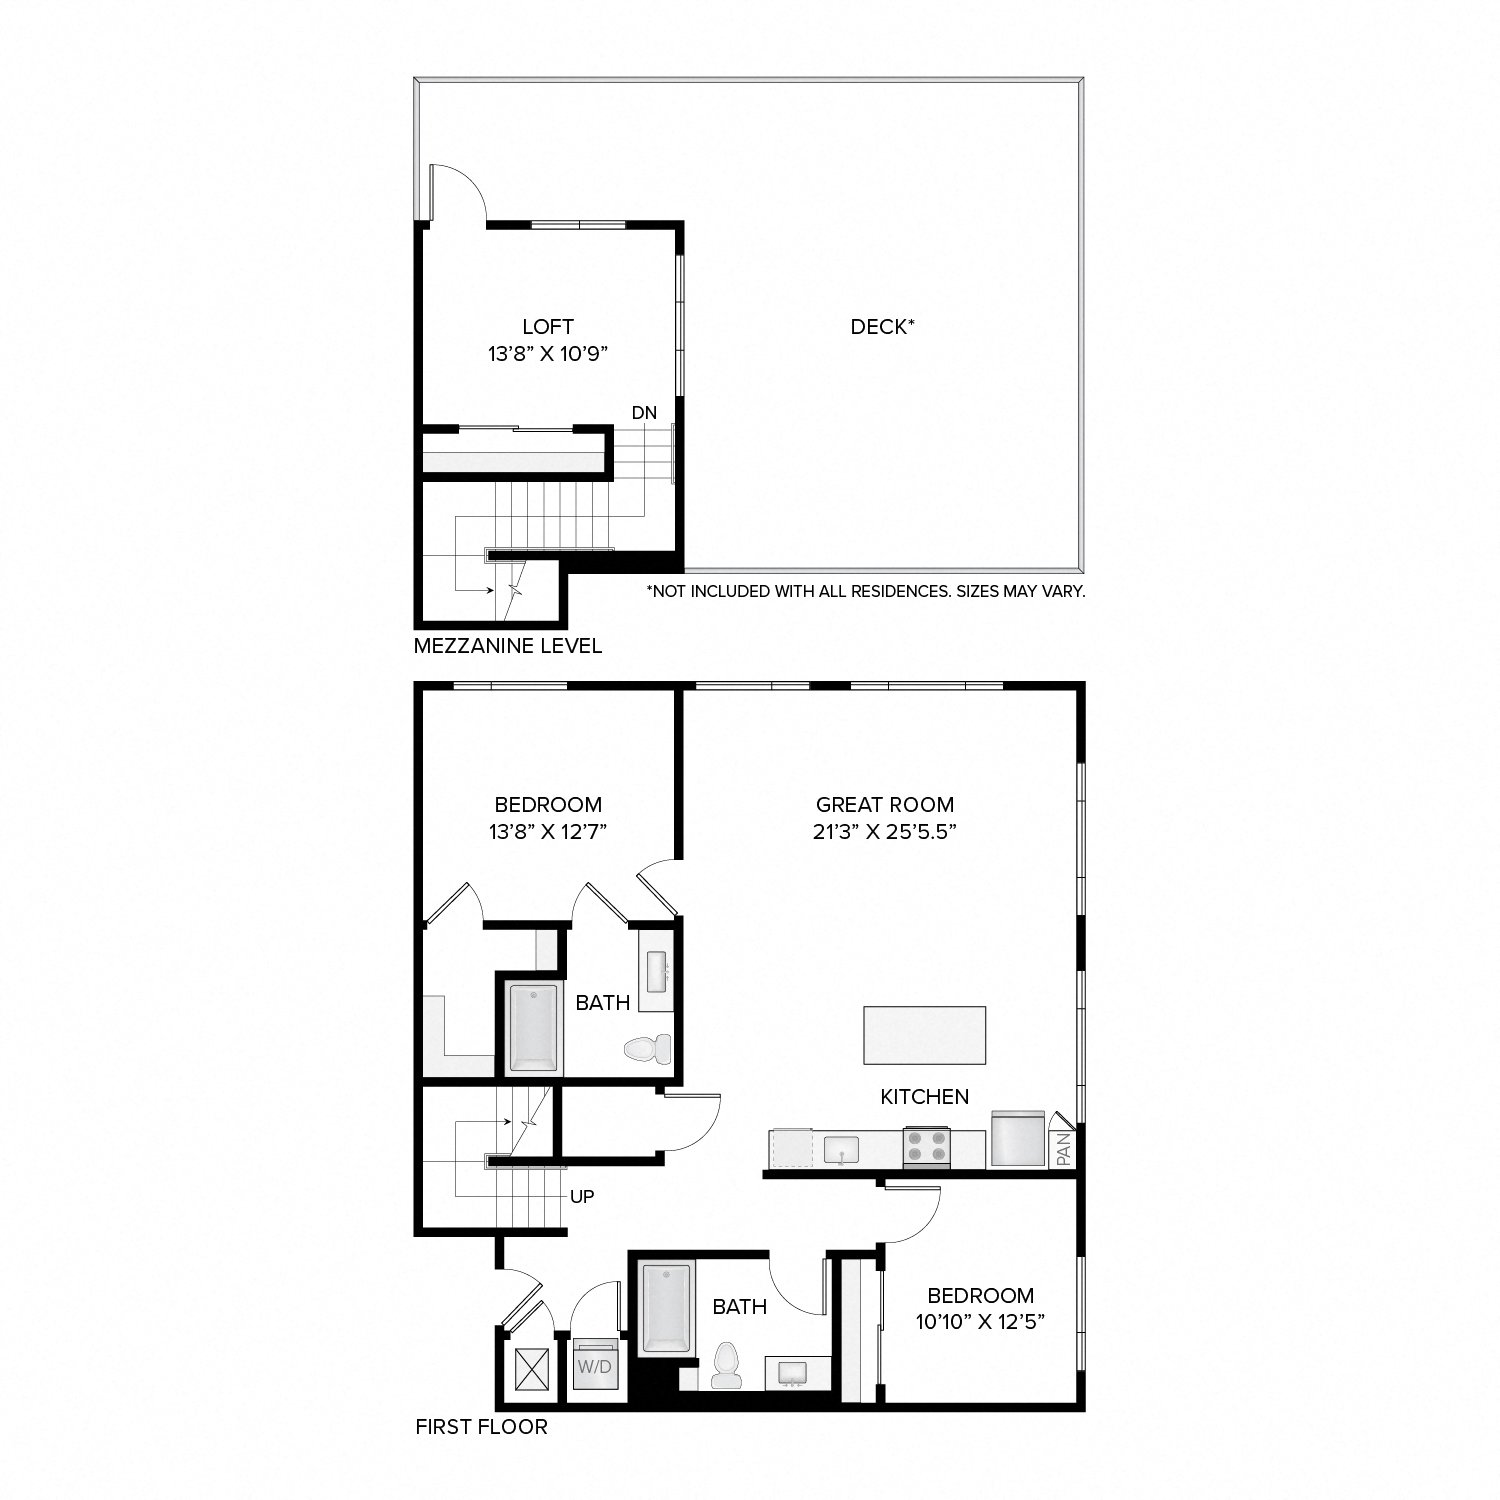 Diagram of the Clay Loft floor plan. Two bedrooms, two bathrooms, an open kitchen and living area, a loft, a washer dryer, and in select residences, a deck.